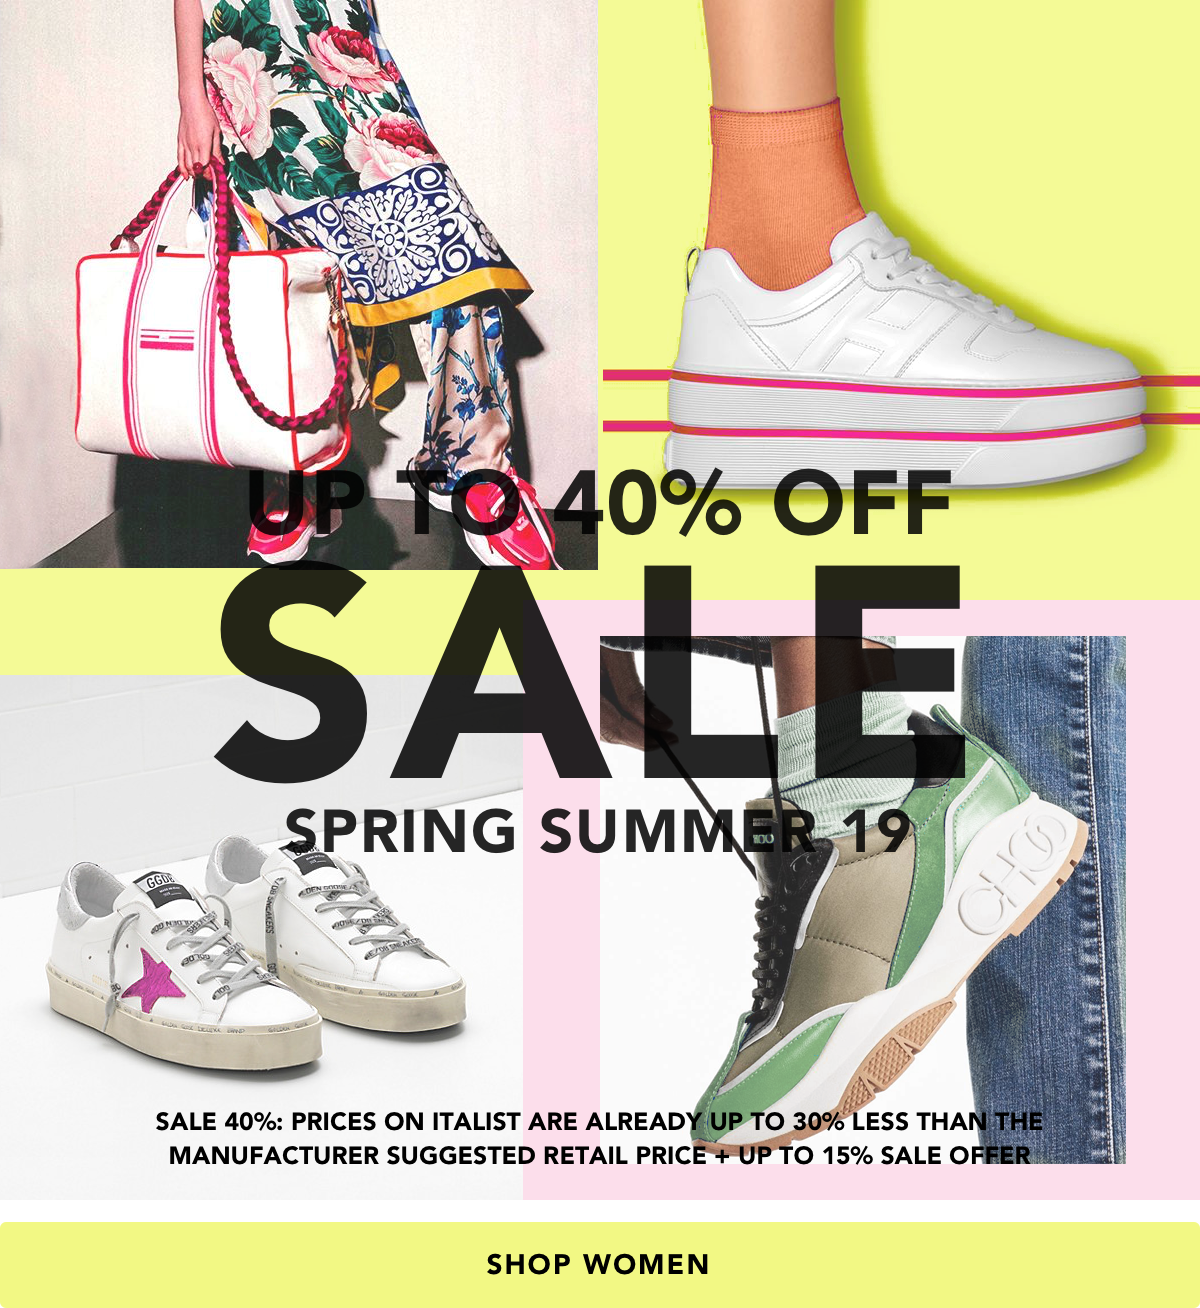 99ab165b5c91 italist SNEAKER MANIA l SALE UP TO 40% OFF on SS19 items: Balenciaga,  Gucci, Golden Goose and more.